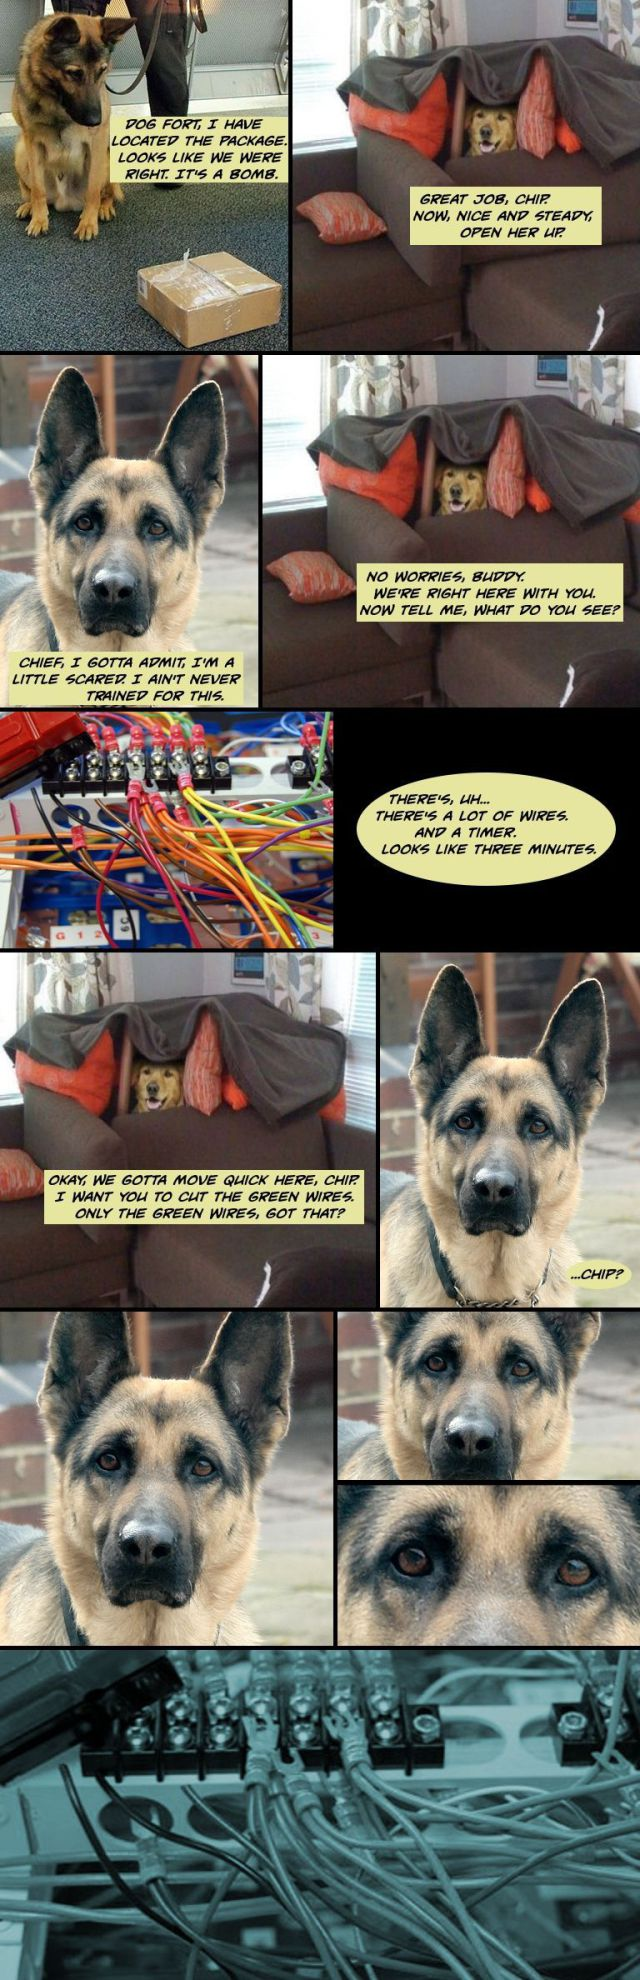 Dog Fort Comics - Package located